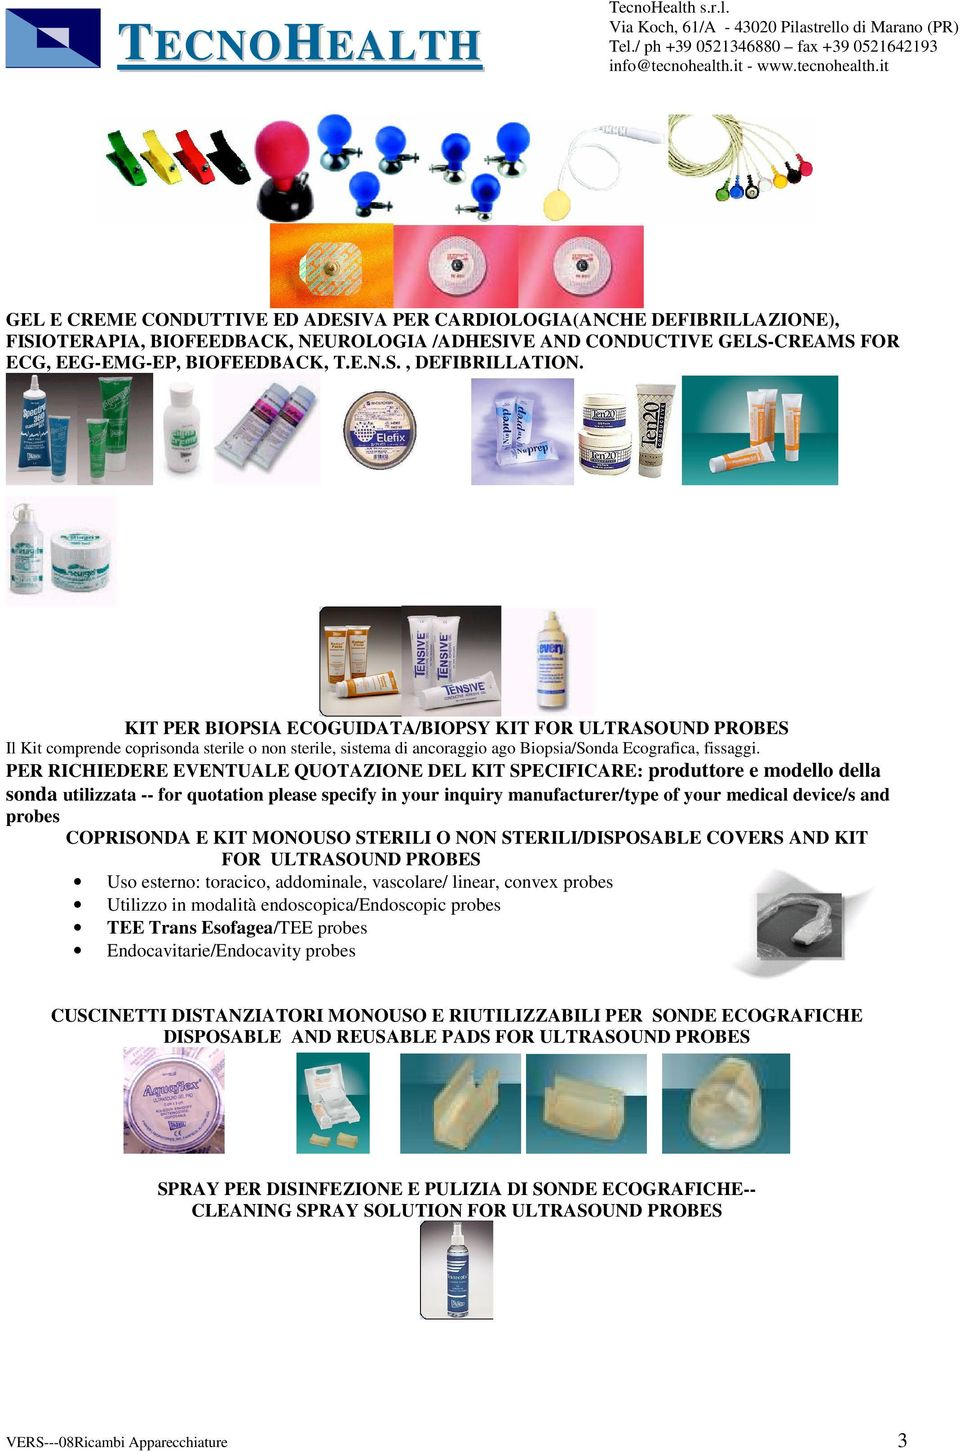 PER RICHIEDERE EVENTUALE QUOTAZIONE DEL KIT SPECIFICARE: produttore e modello della sonda utilizzata -- for quotation please specify in your inquiry manufacturer/type of your medical device/s and